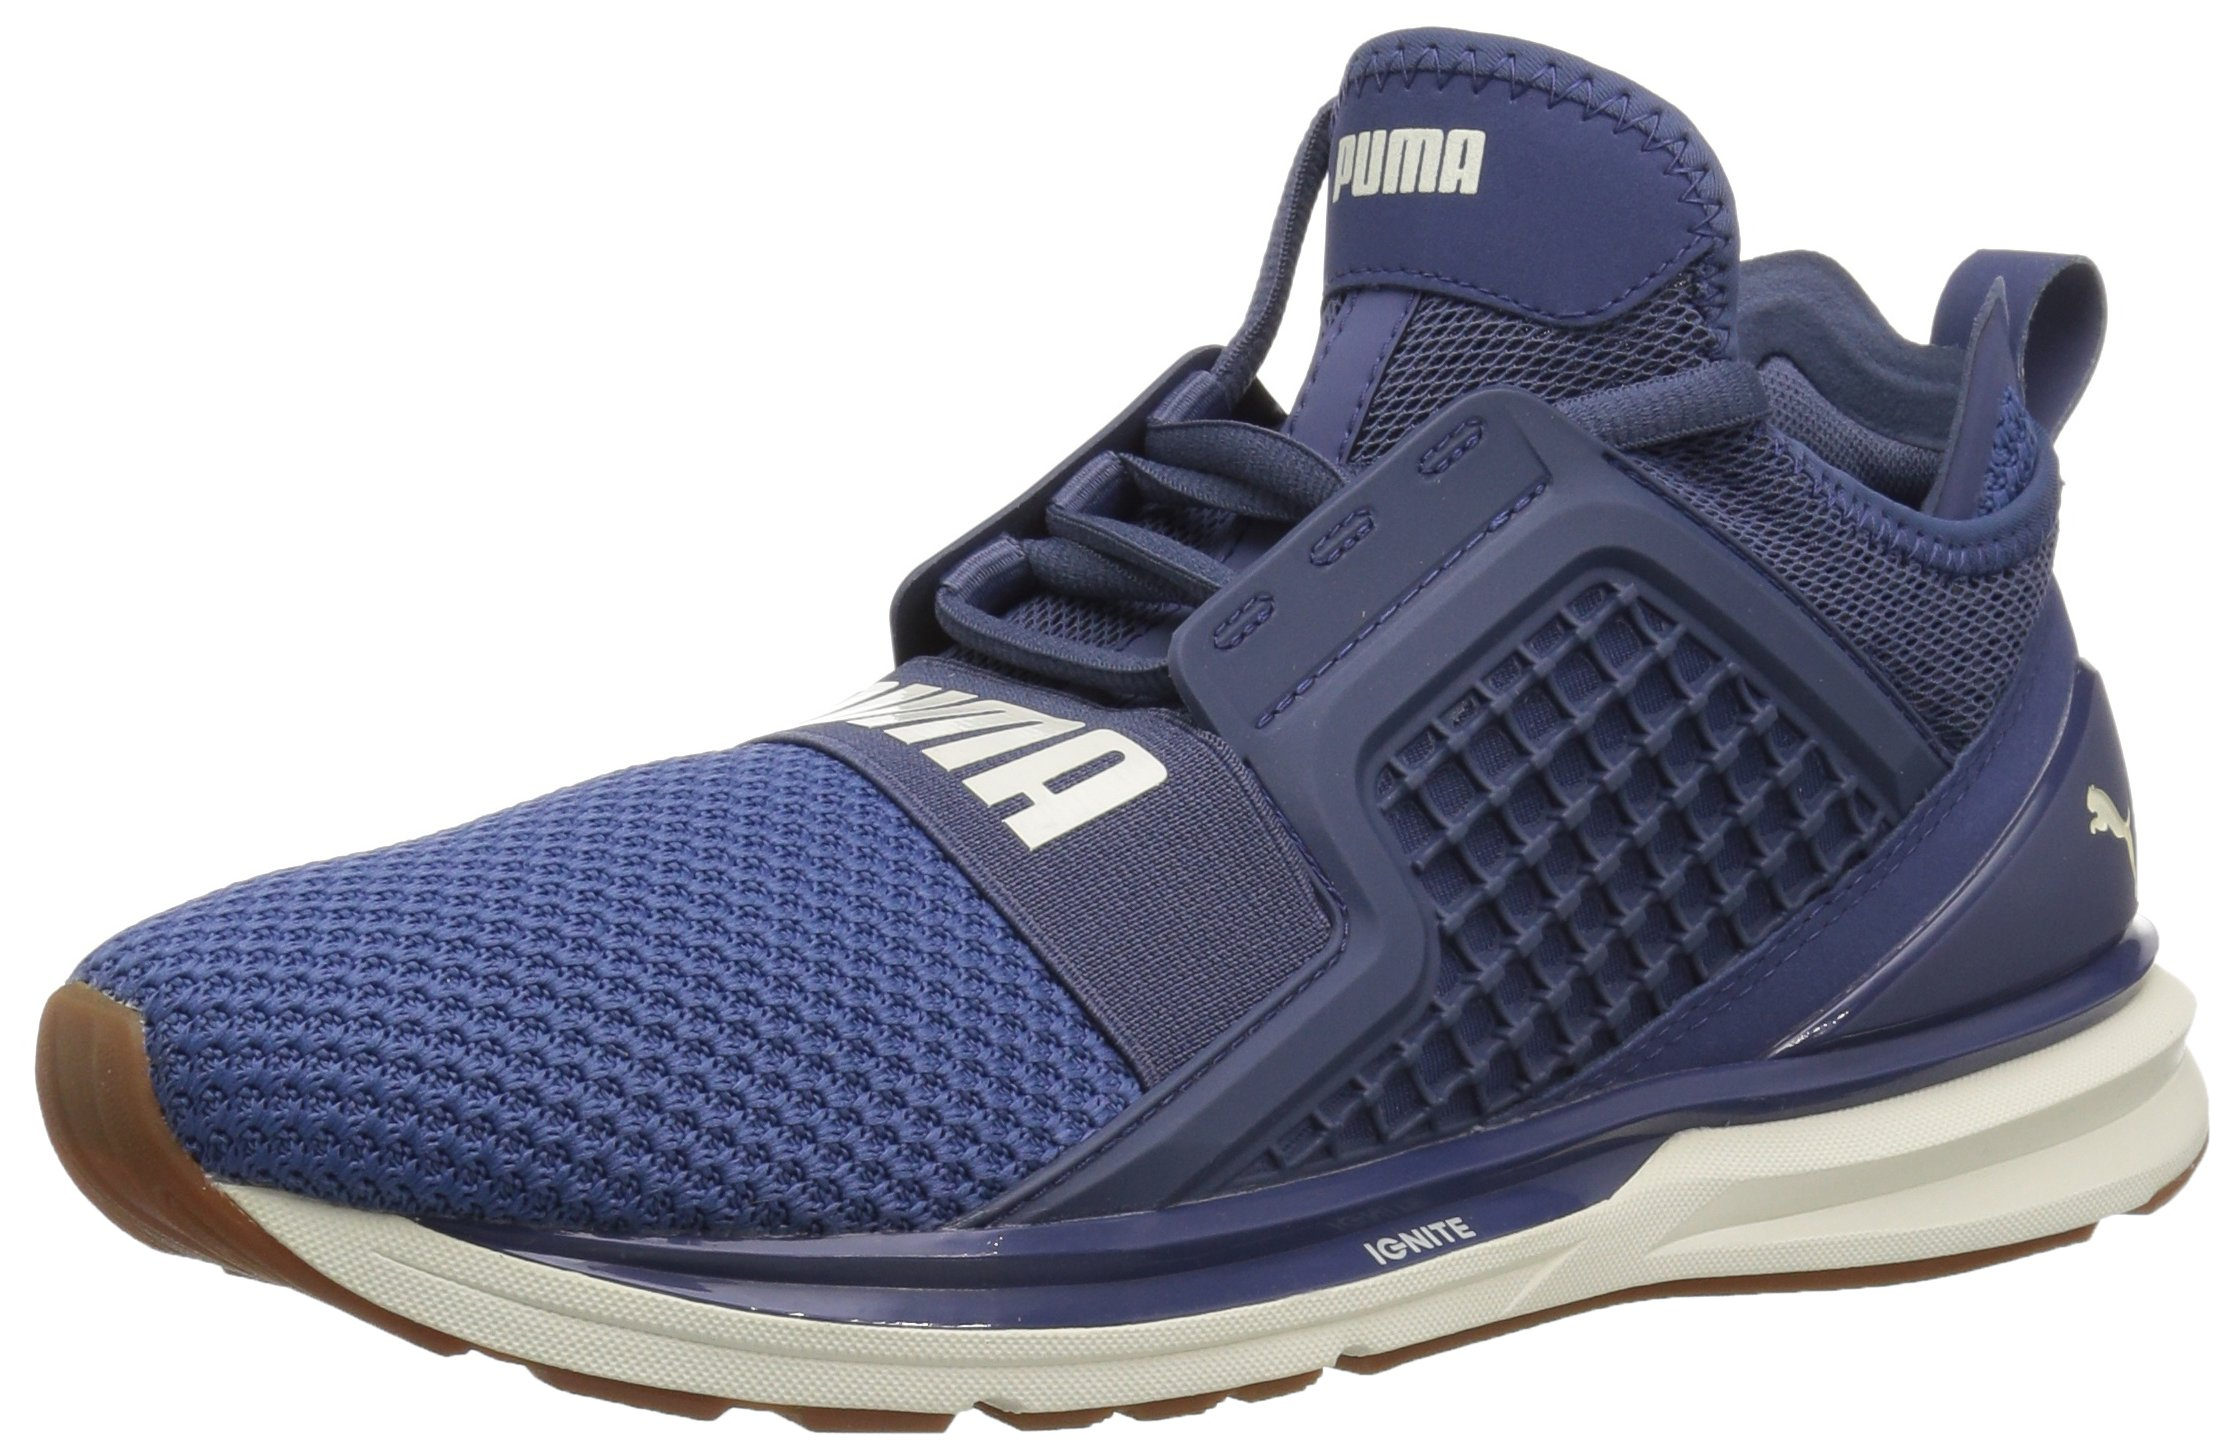 PUMA Women/'s Ignite Limitless Wn/'s Cross-Trainer Shoe